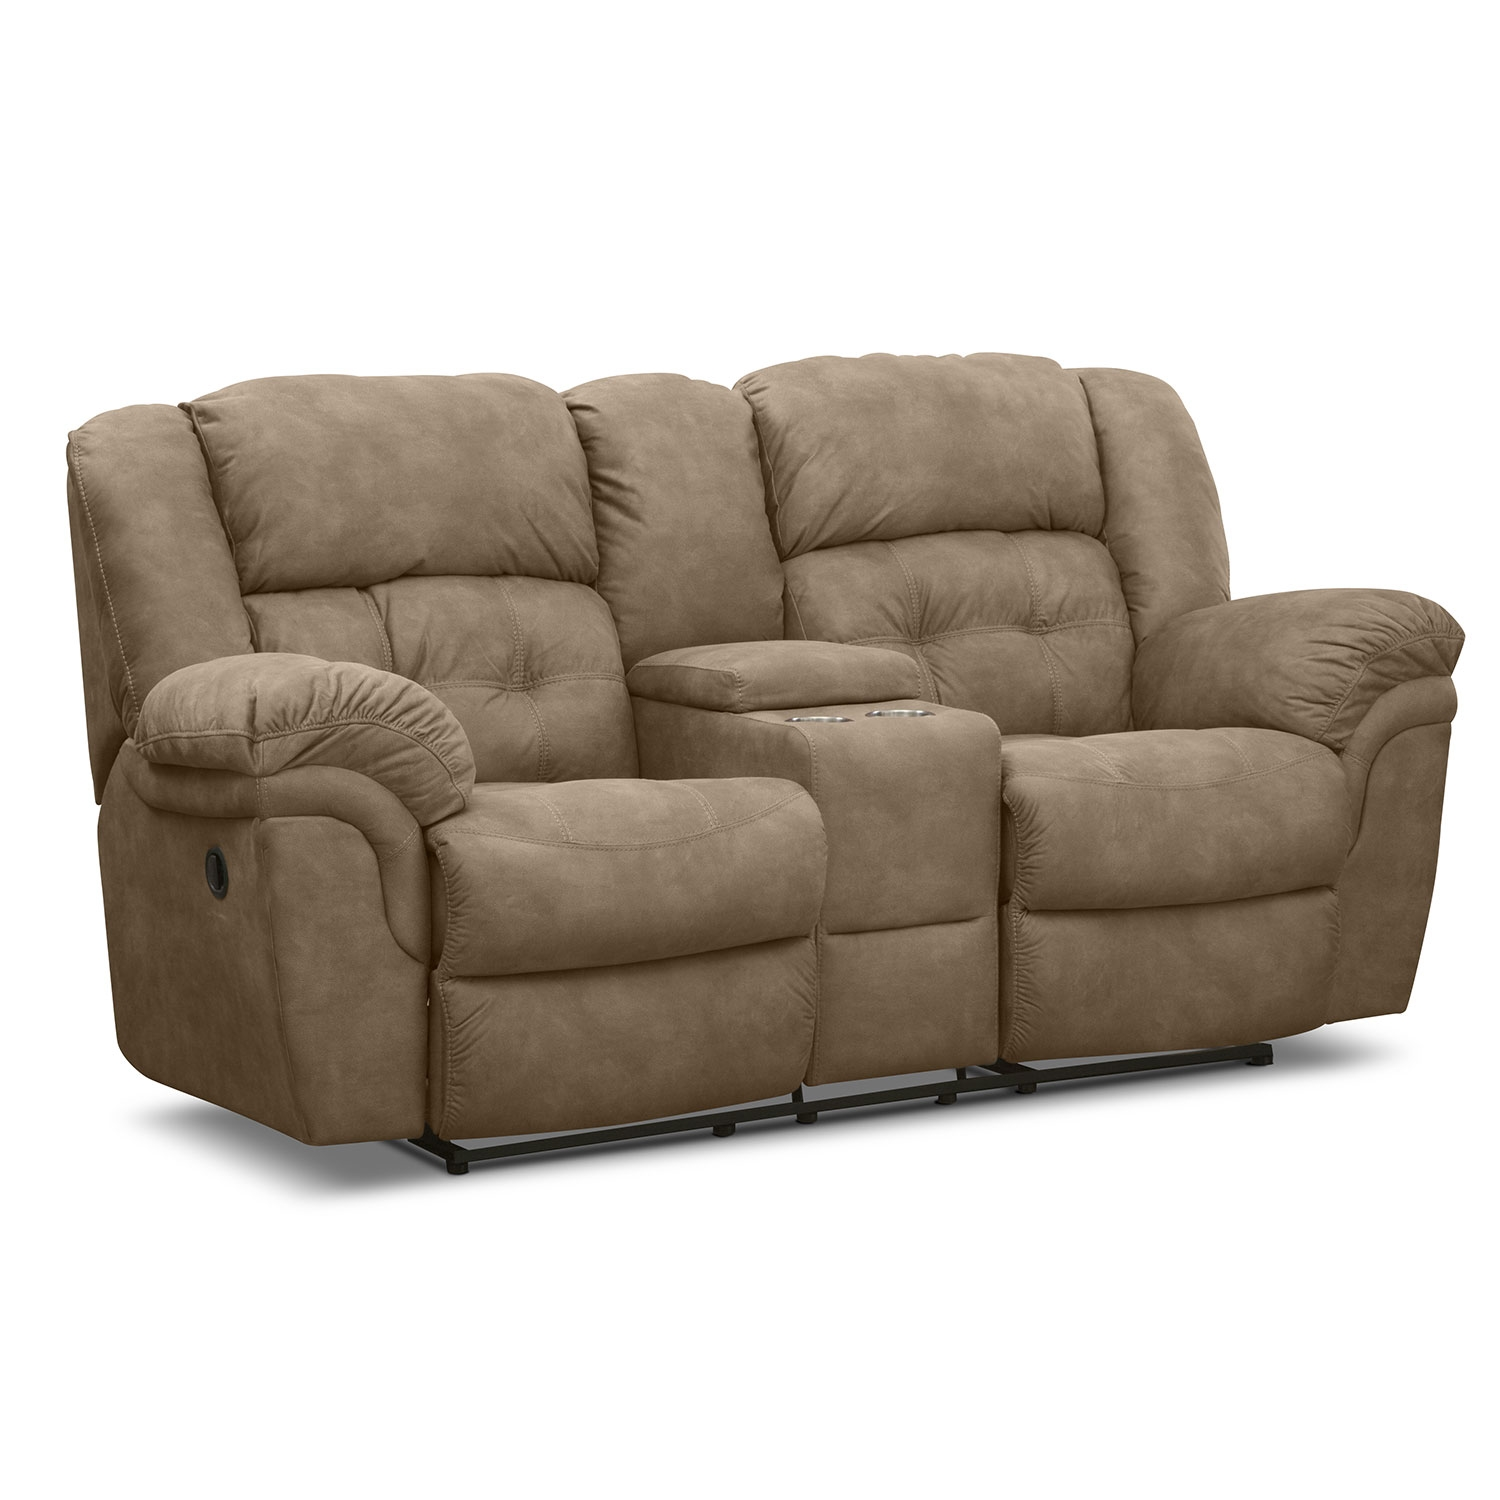 Microfiber Reclining Loveseat With Console: Minimizing Your Worries One At A Time